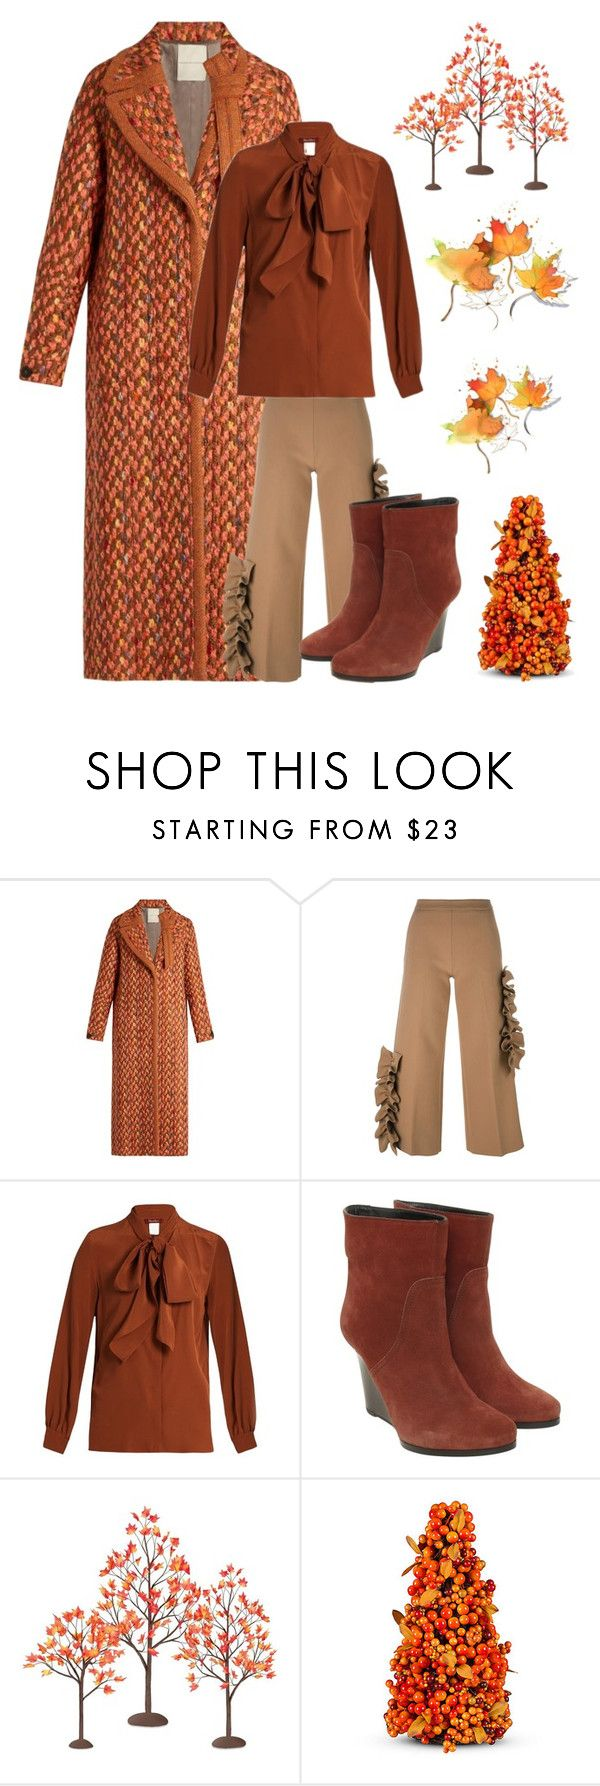 """""""Fall"""" by kotnourka ❤ liked on Polyvore featuring Marco de Vincenzo, MSGM, MaxMara, BOSS Orange, Department 56 and Improvements"""